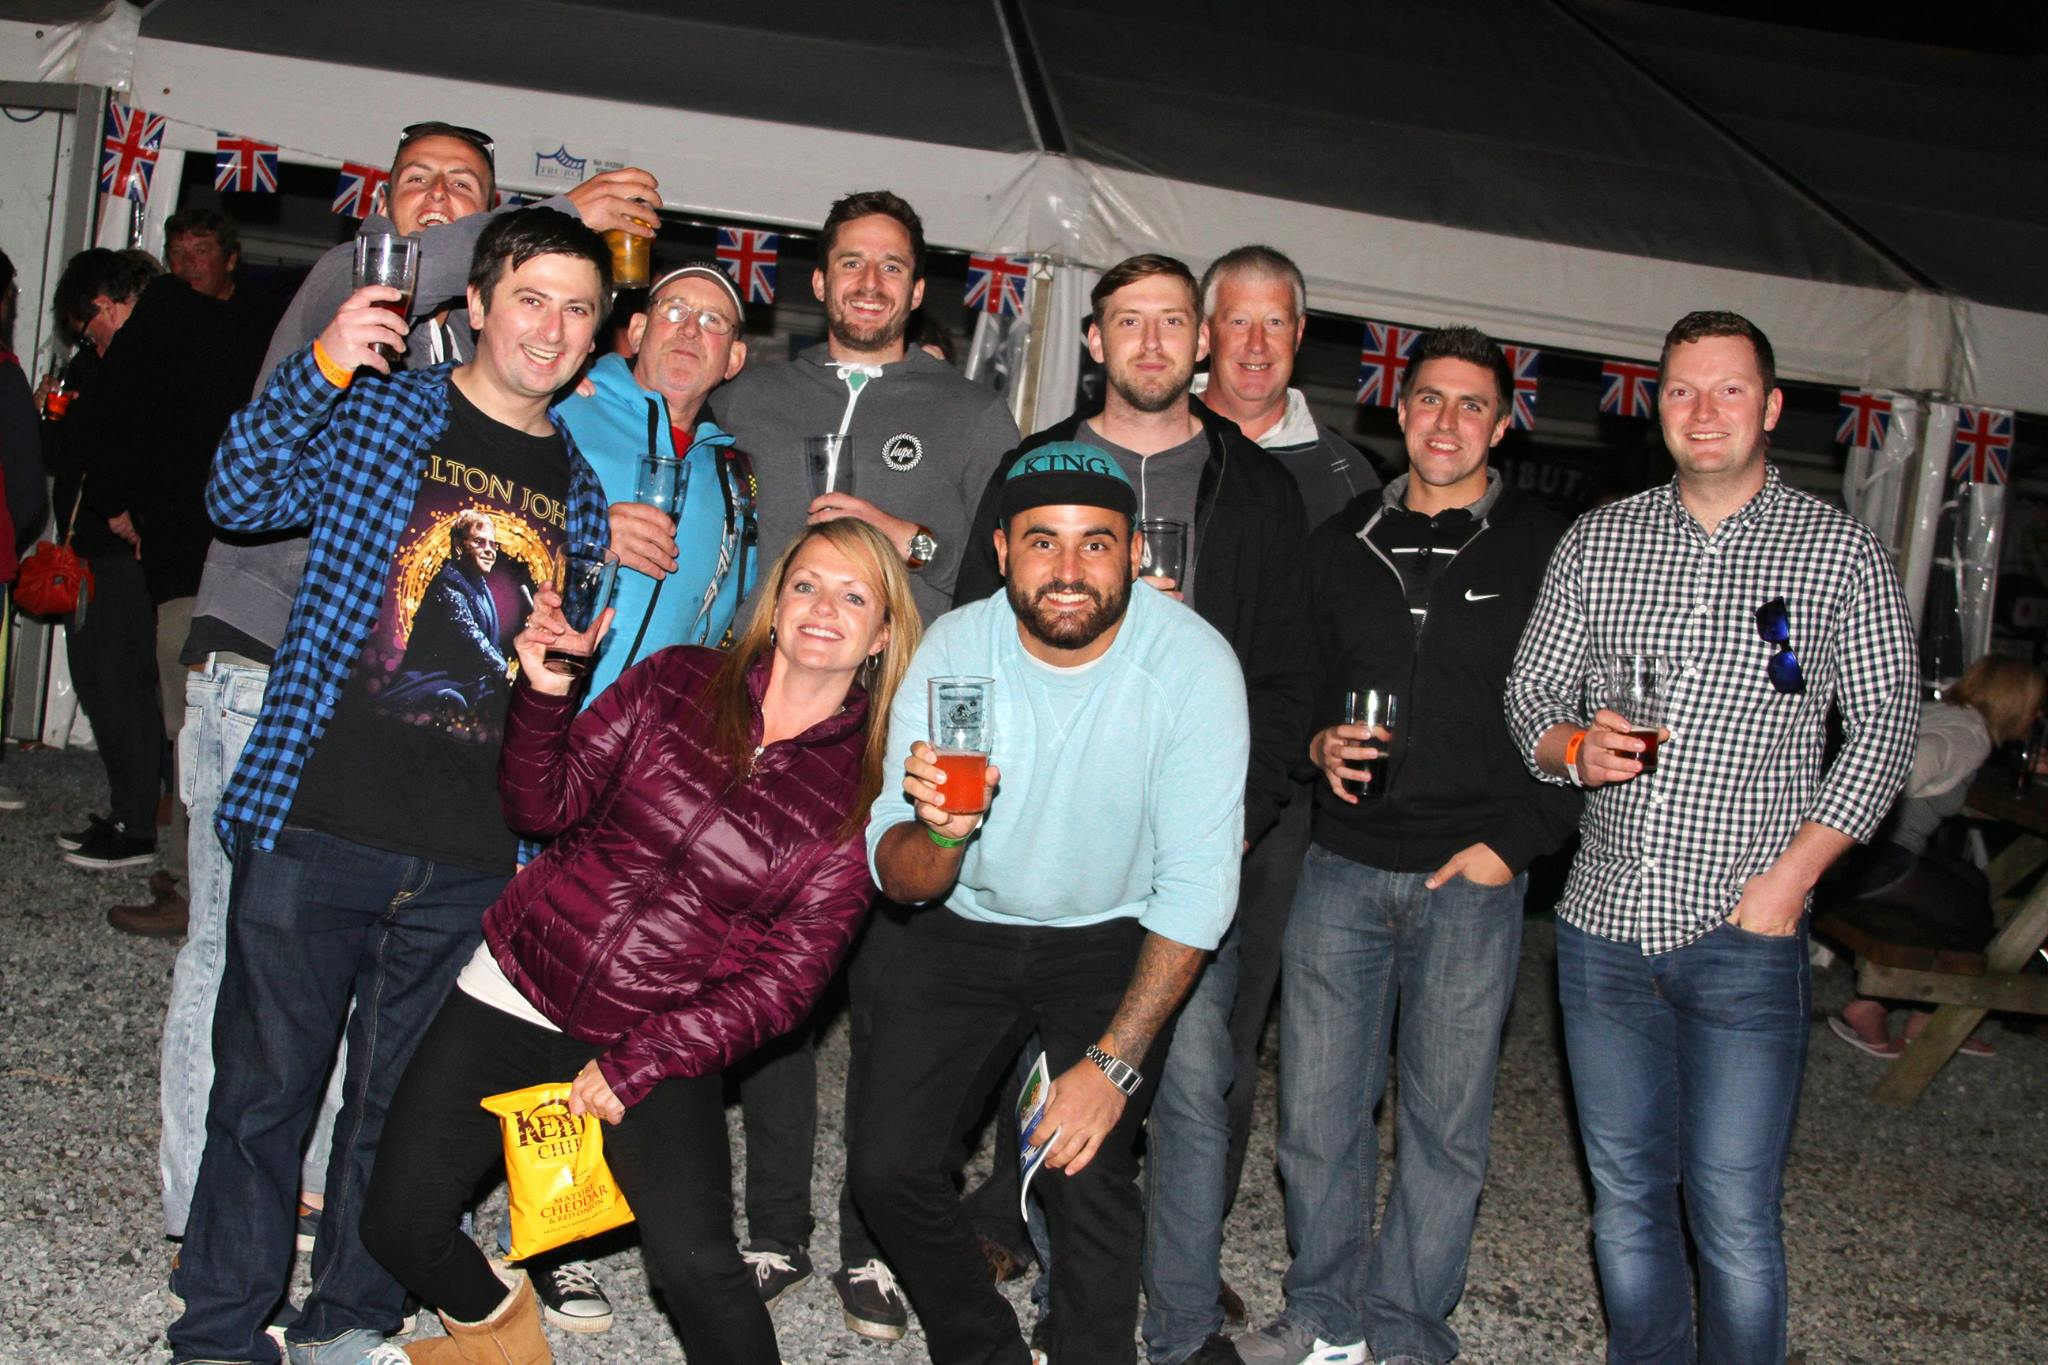 Newquay Beer Festival 2017 dates announced!